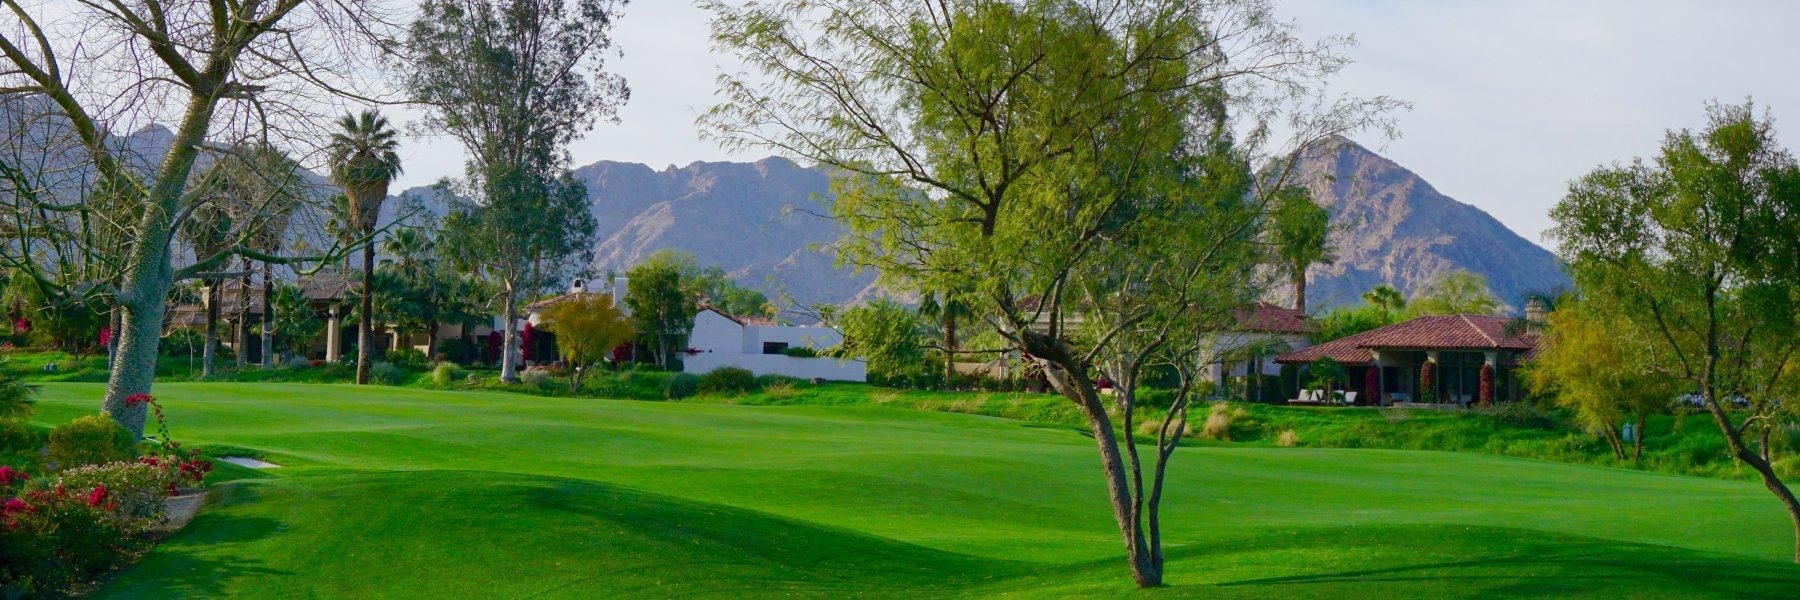 The Tradition is a community of homes in La Quinta California